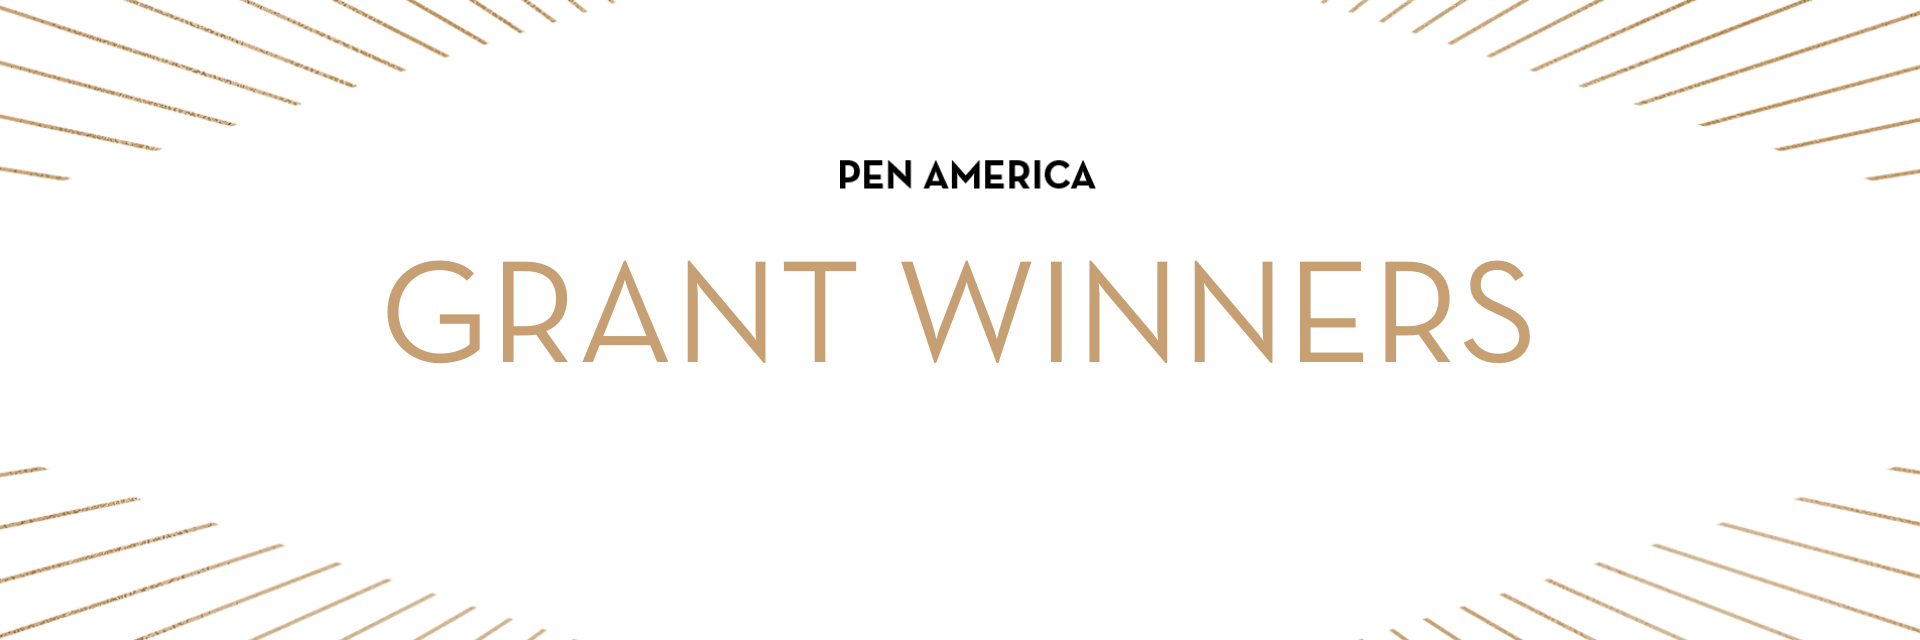 """""""PEN America Grant Winners"""" in centered text; golden rays sticking out from each corner"""